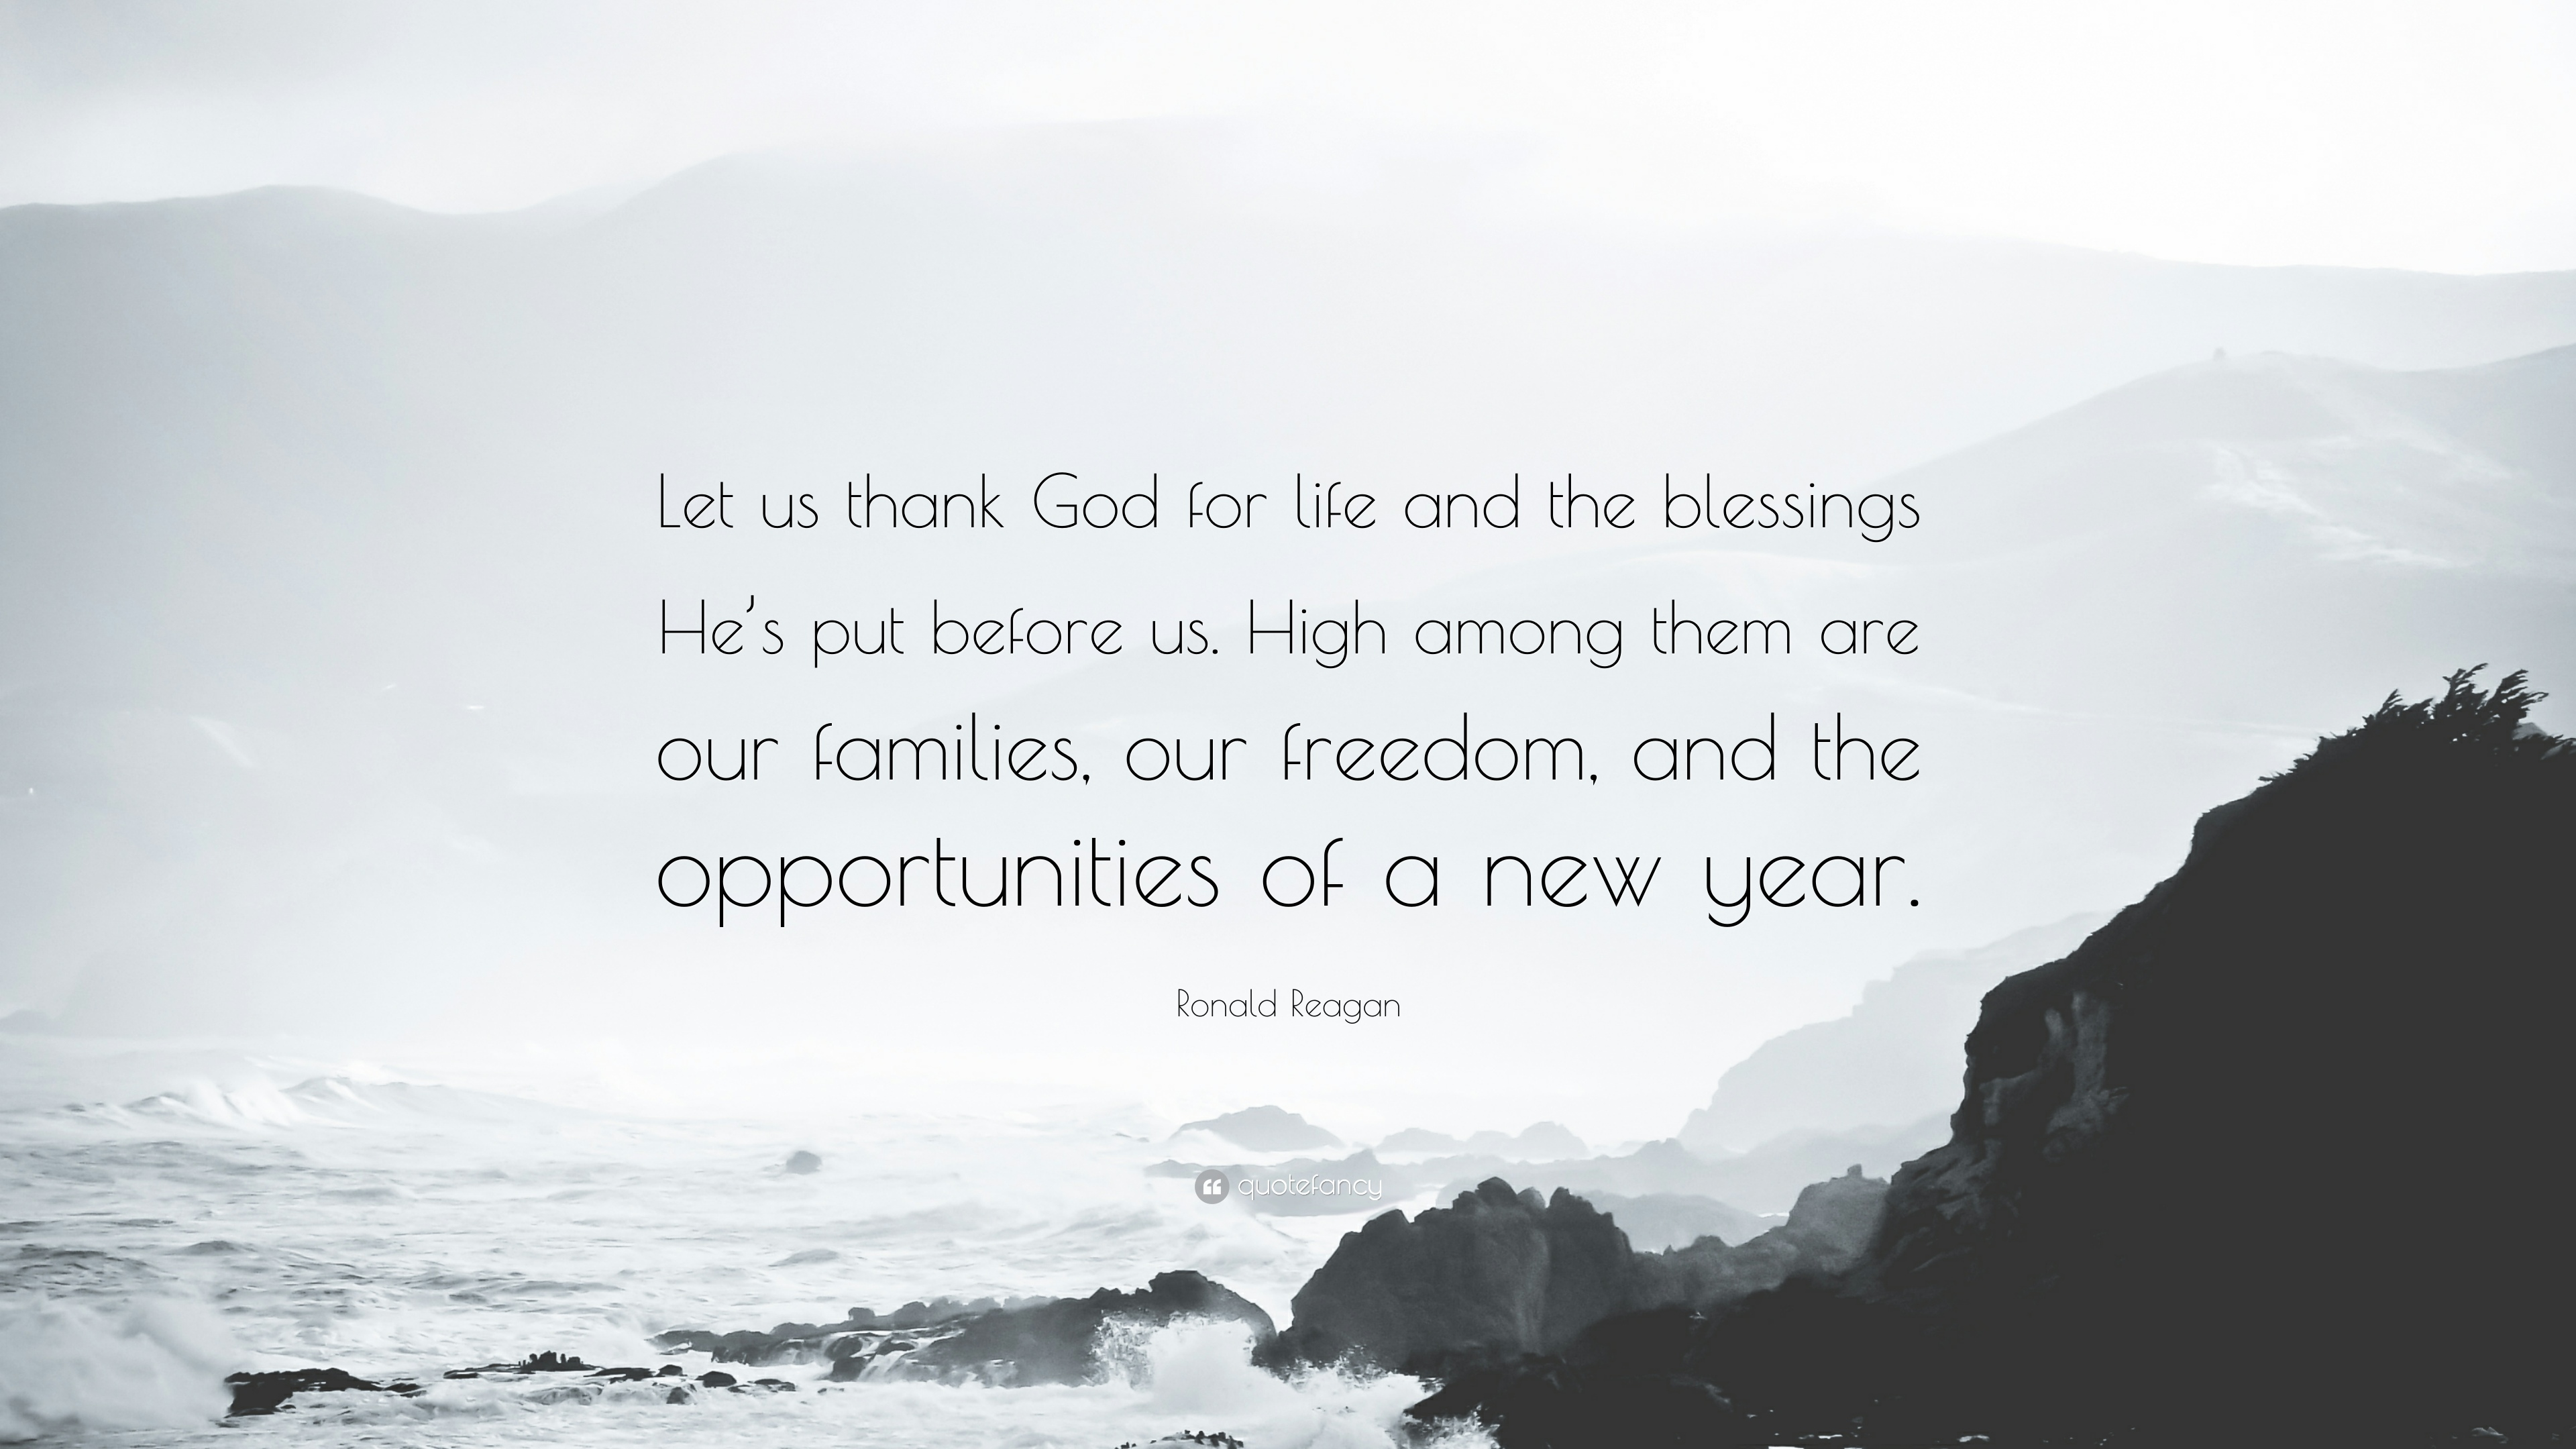 Images Of Inspiring Quotes Wallpaper Ronald Reagan Quote Let Us Thank God For Life And The